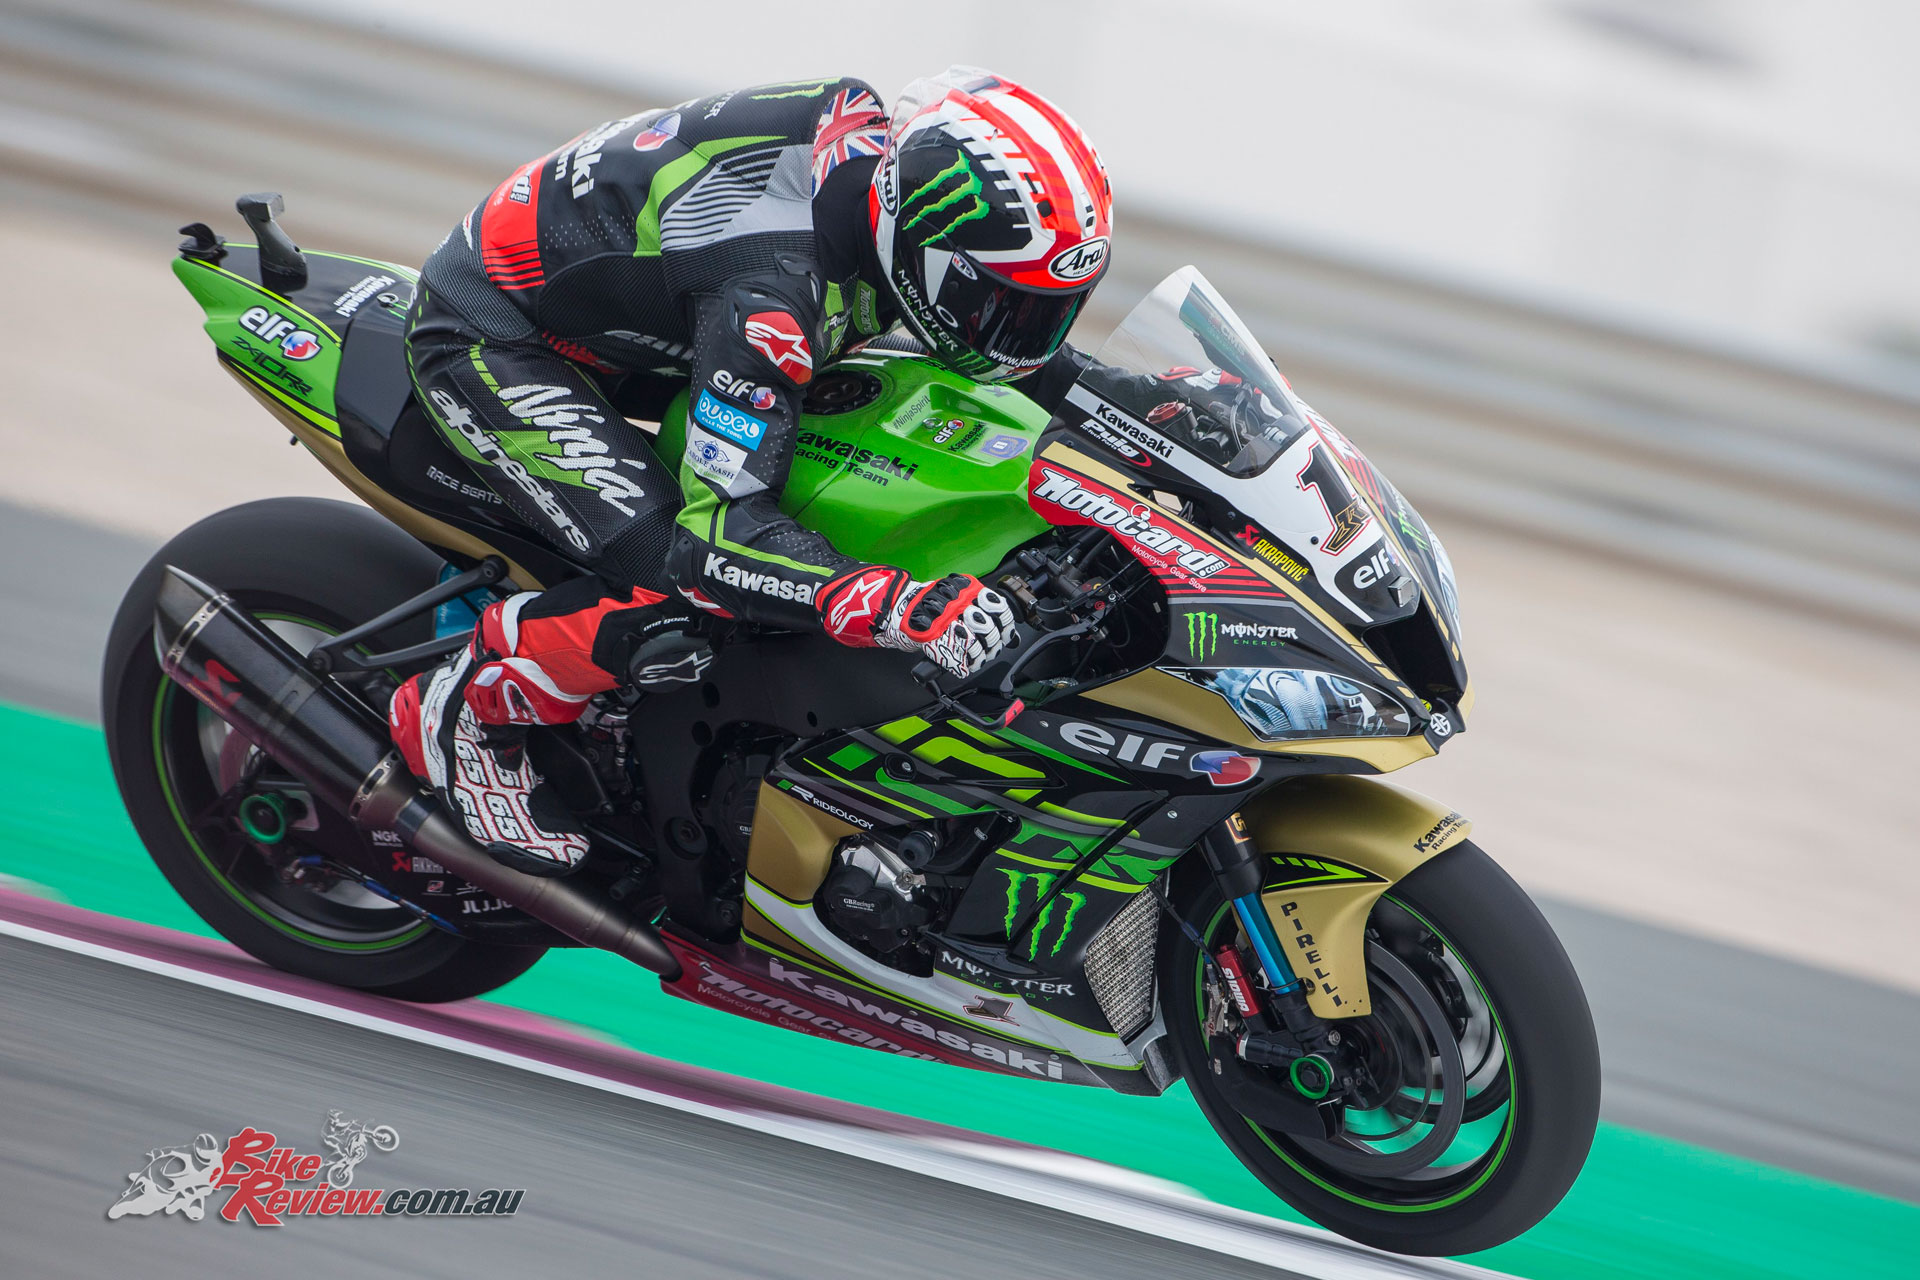 Jonathan Rea - Image by 2Snap